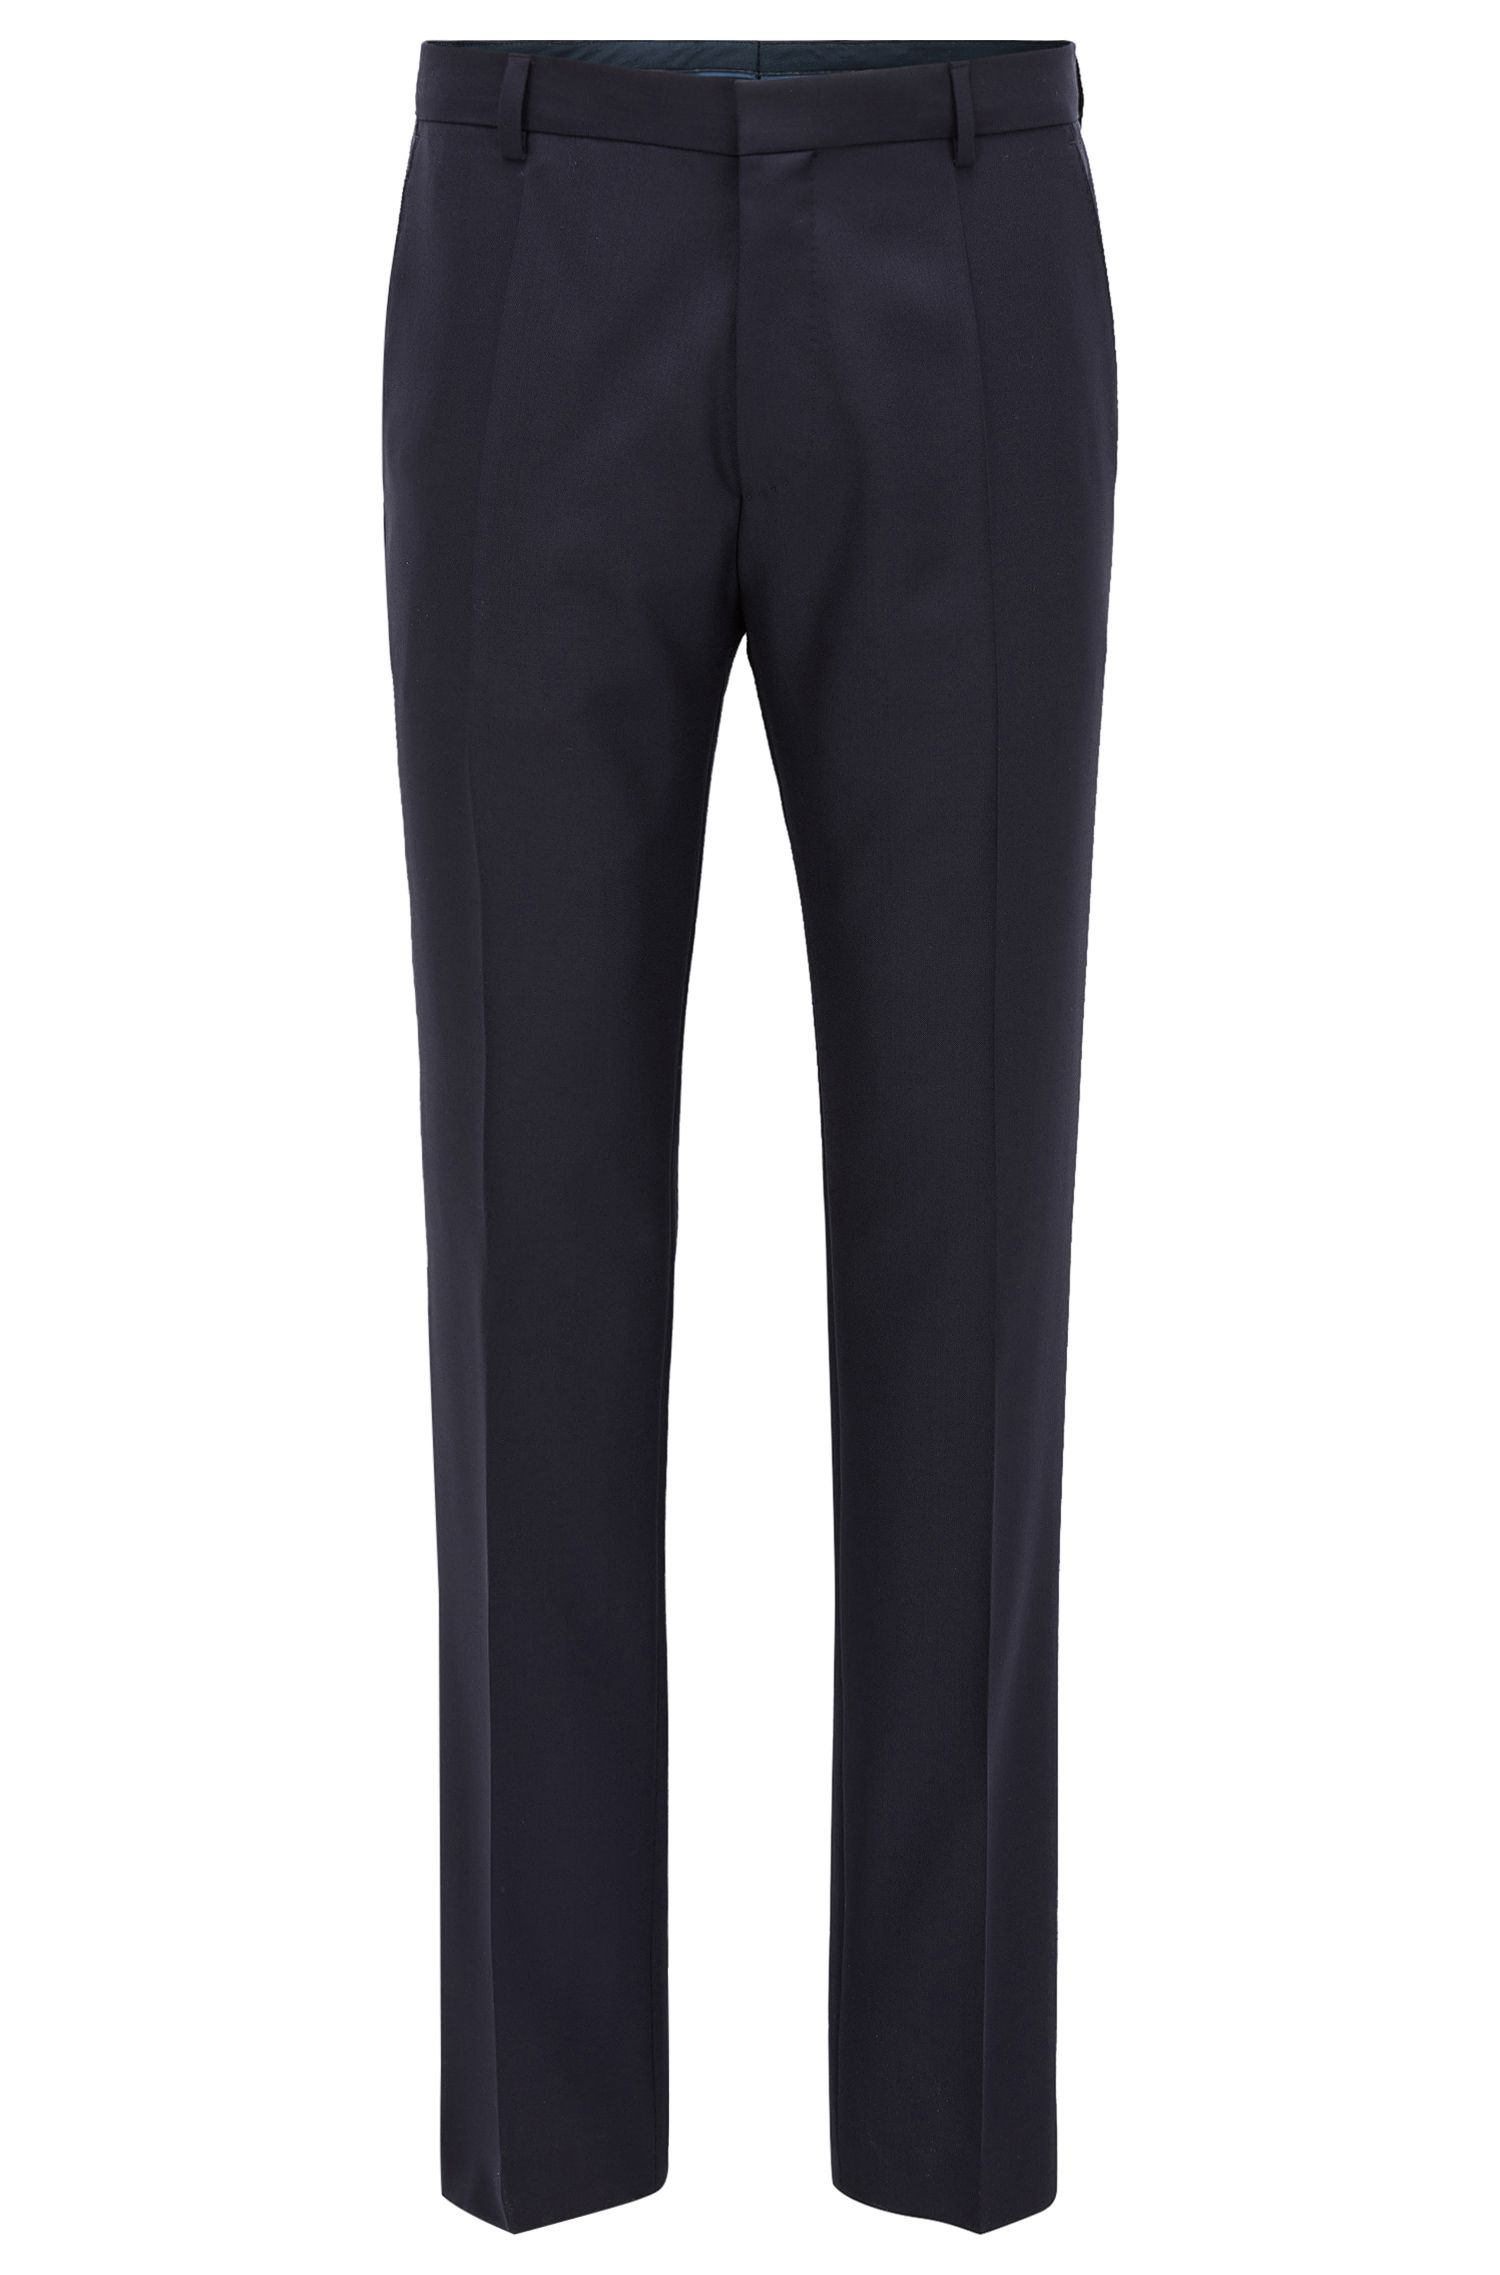 Pantalon Slim Fit en laine de la collection Travel Line avec détails novateurs